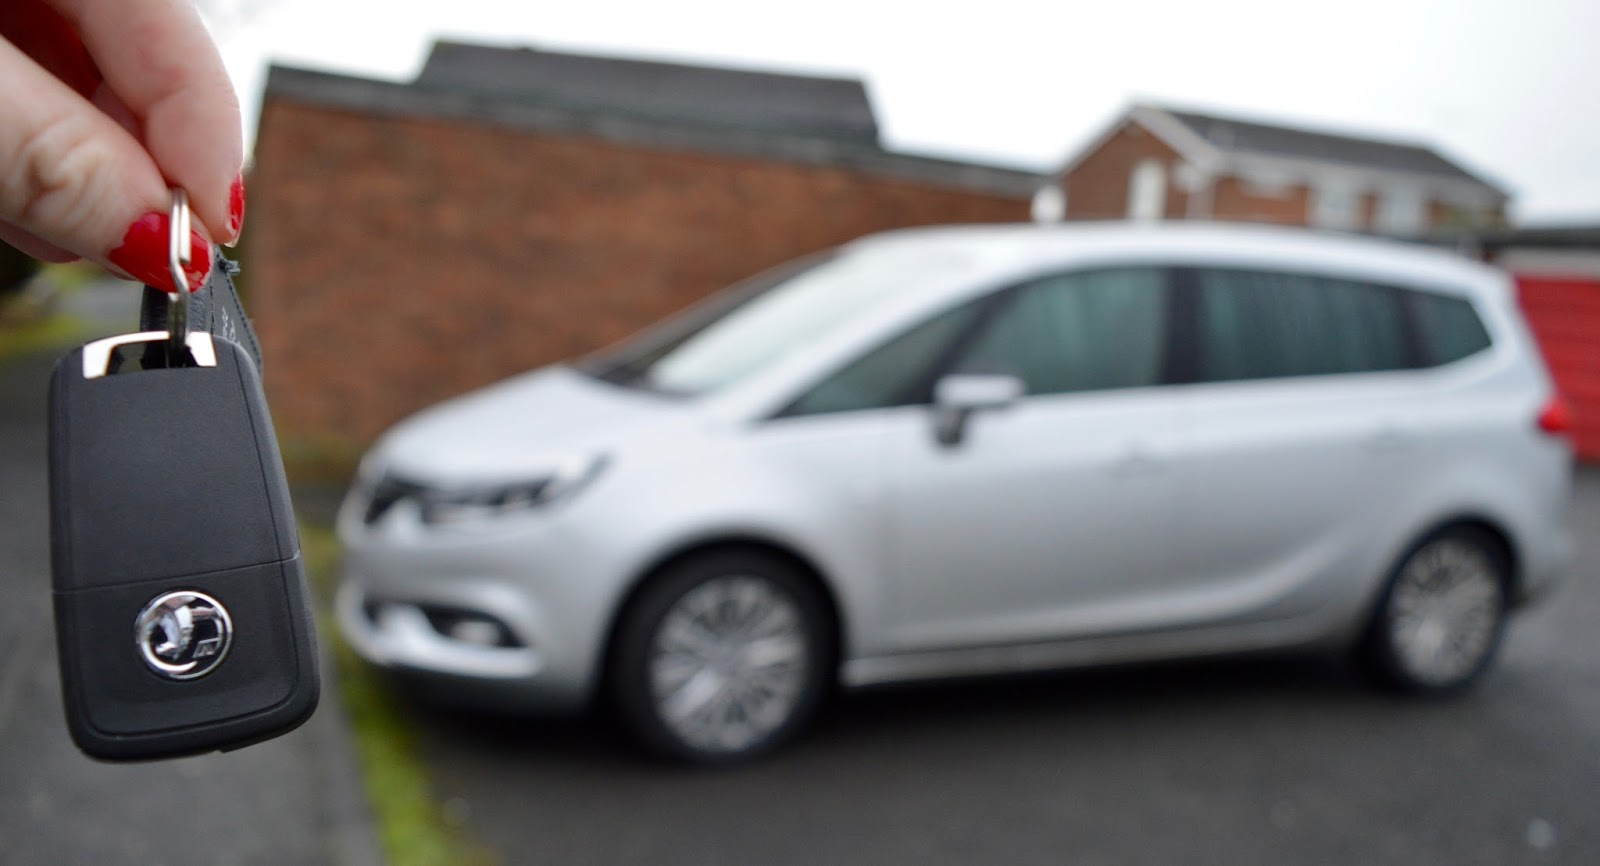 5 Reasons The Vauxhall Zafira Tourer Is An Ideal Car For